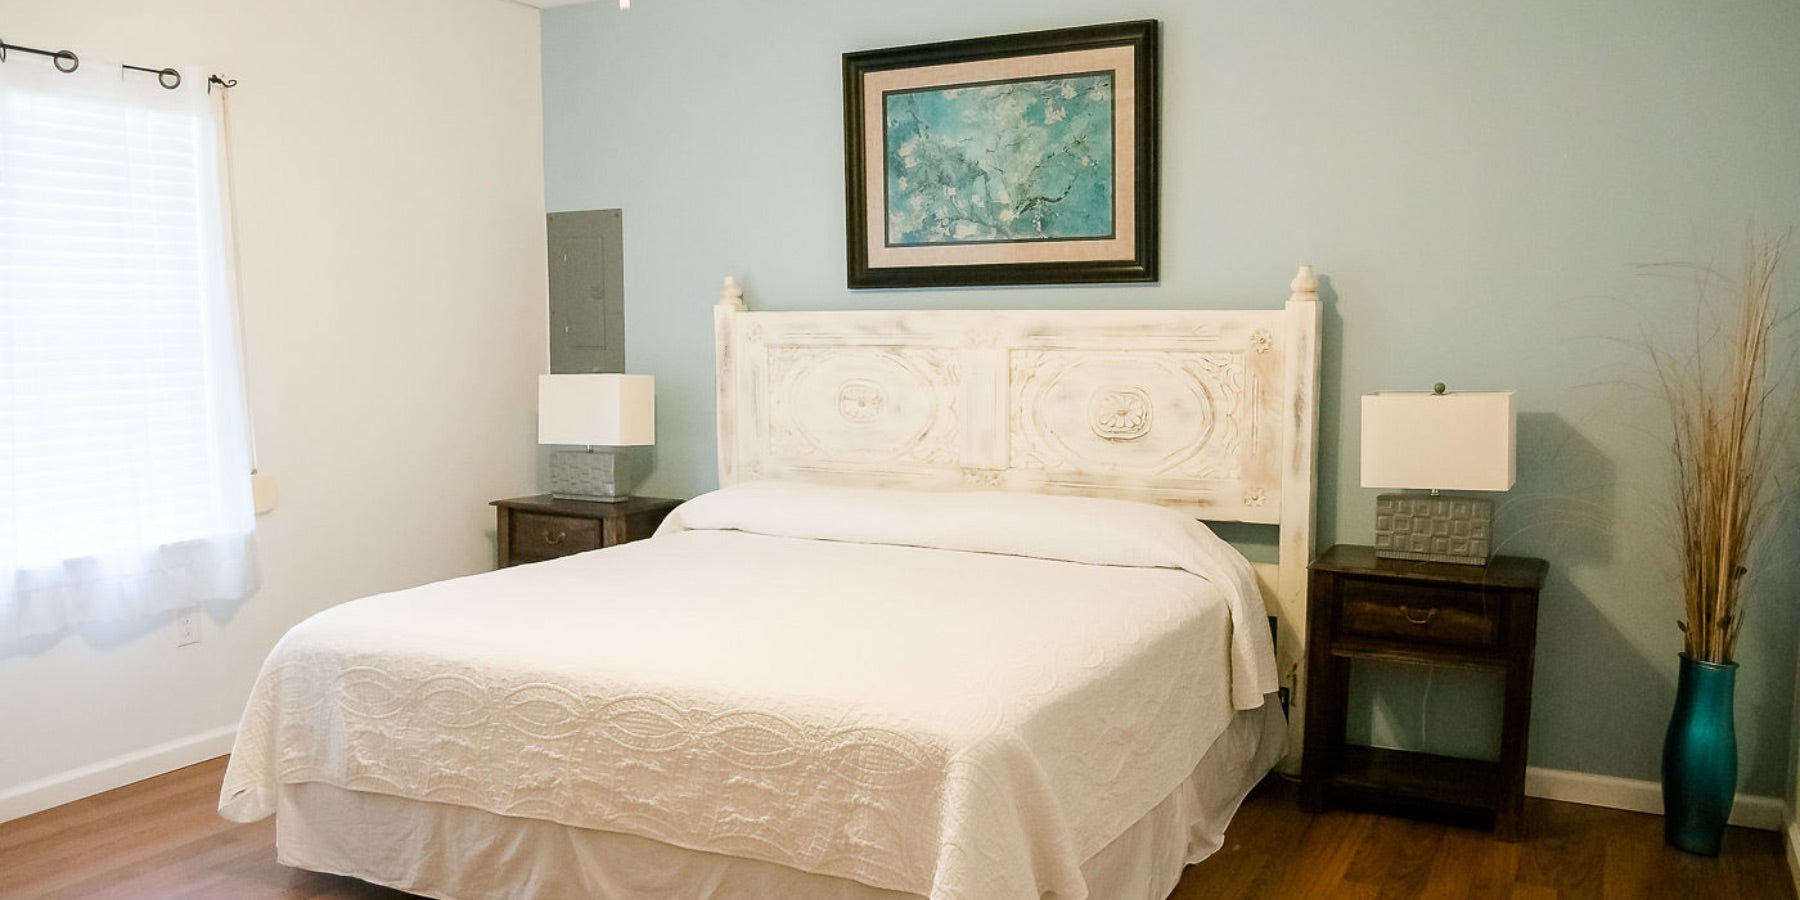 A bed in one of the Villas at Koru Village's accommodations. The room is decorated with light blue, teal, and white, while the Cape Hatteras sun shines in through the window.